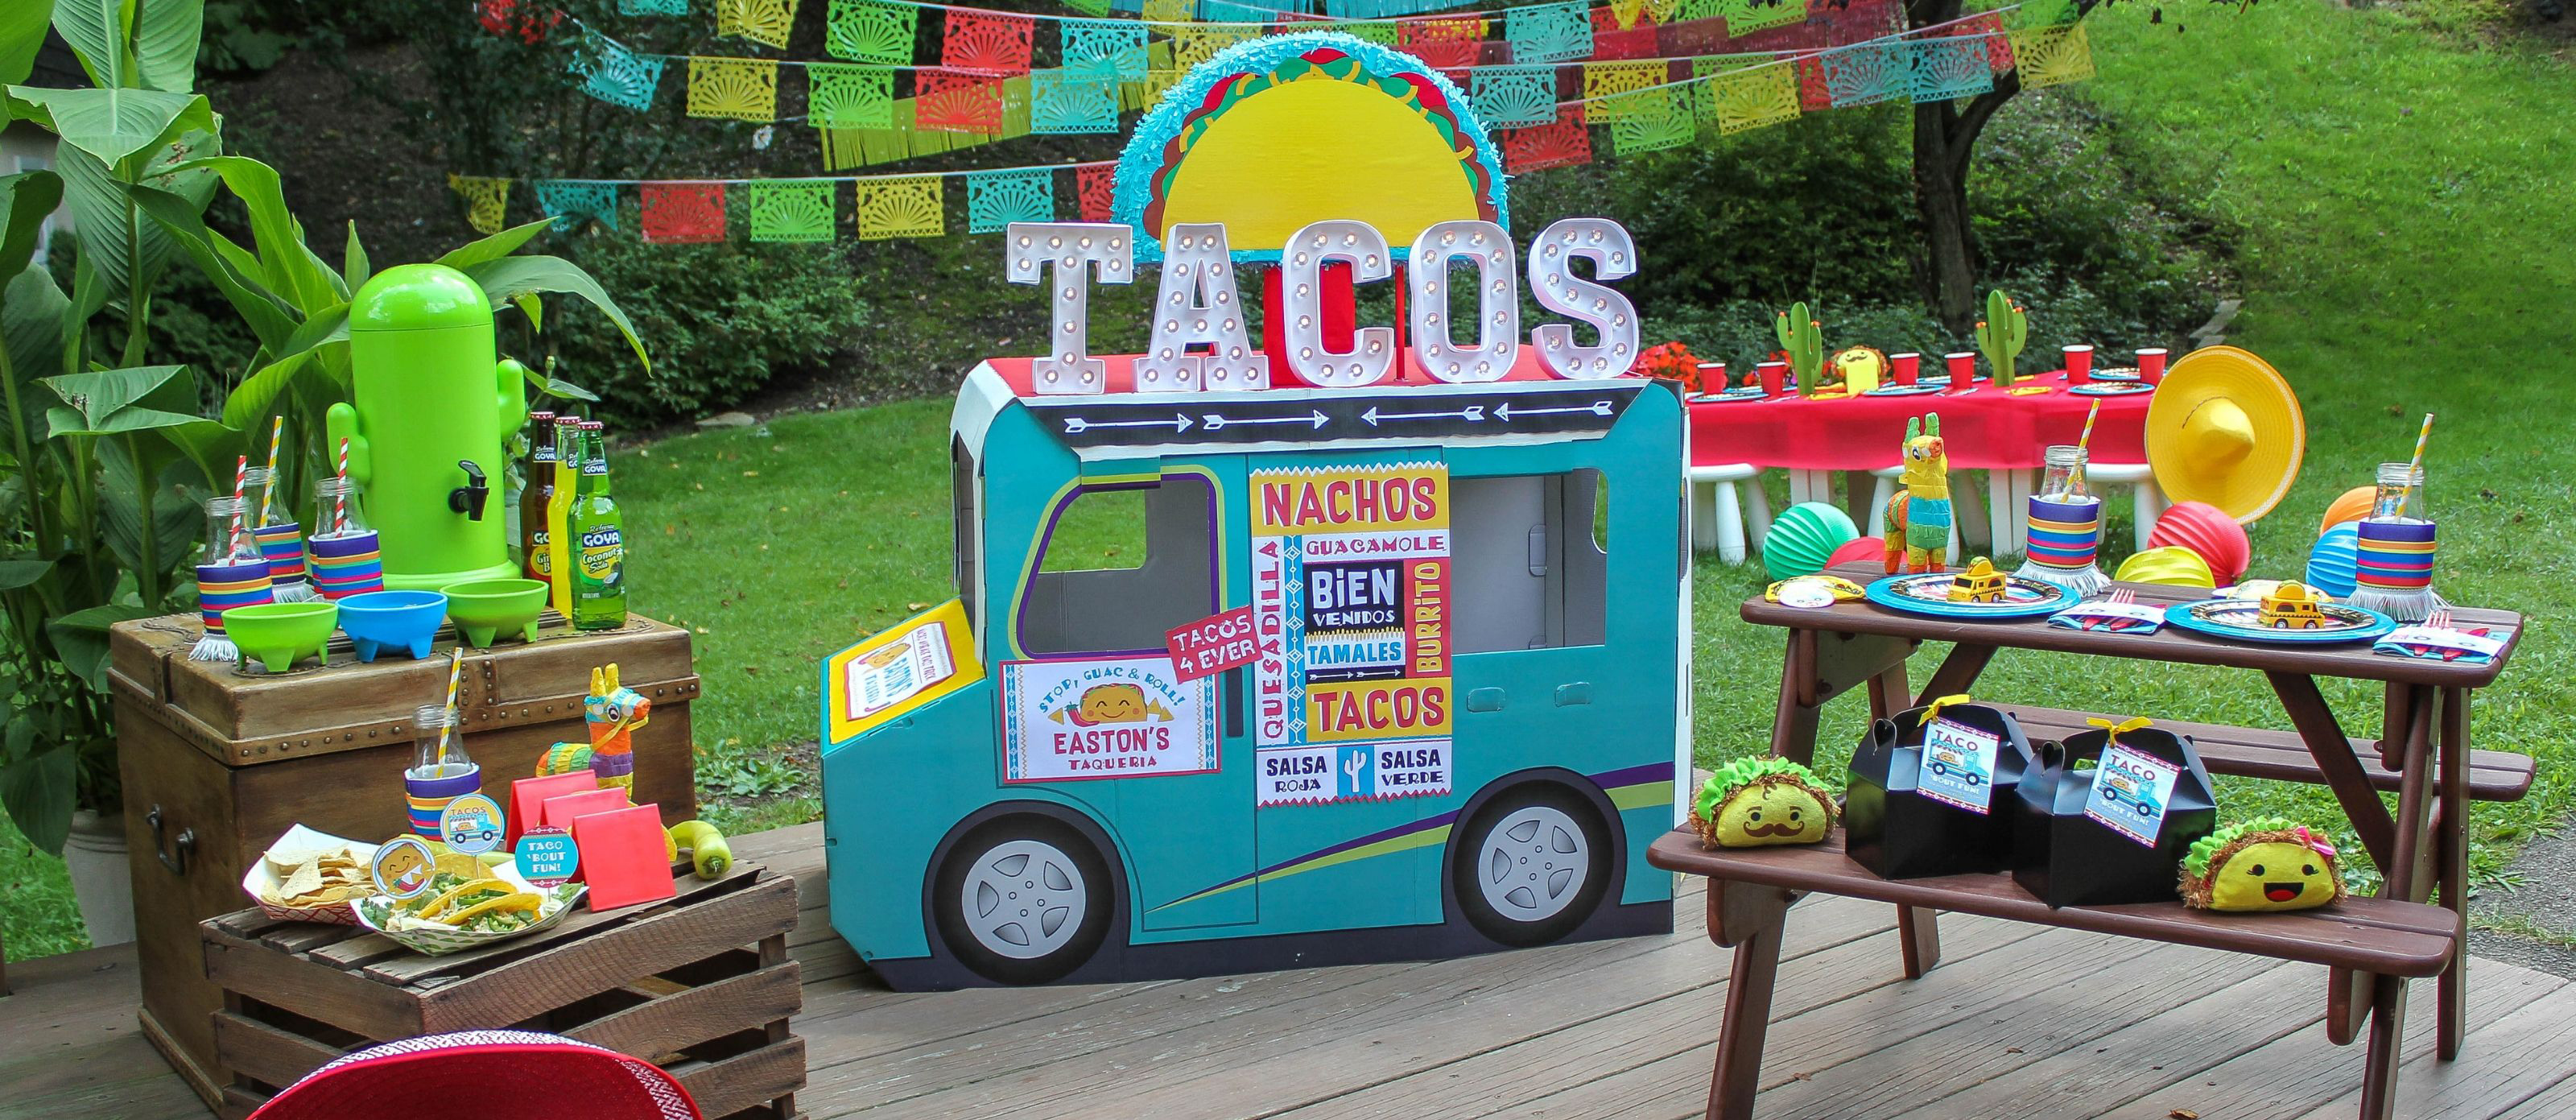 taco truck, taco truck party, taco, taco 'bout fun, oriental trading, Fun365, Just Add Confetti, fiesta, taco truck fiesta, diy taco truck, kids party, party ideas, diy party ideas, free printables, party printables, taco truck birthday party, taco party